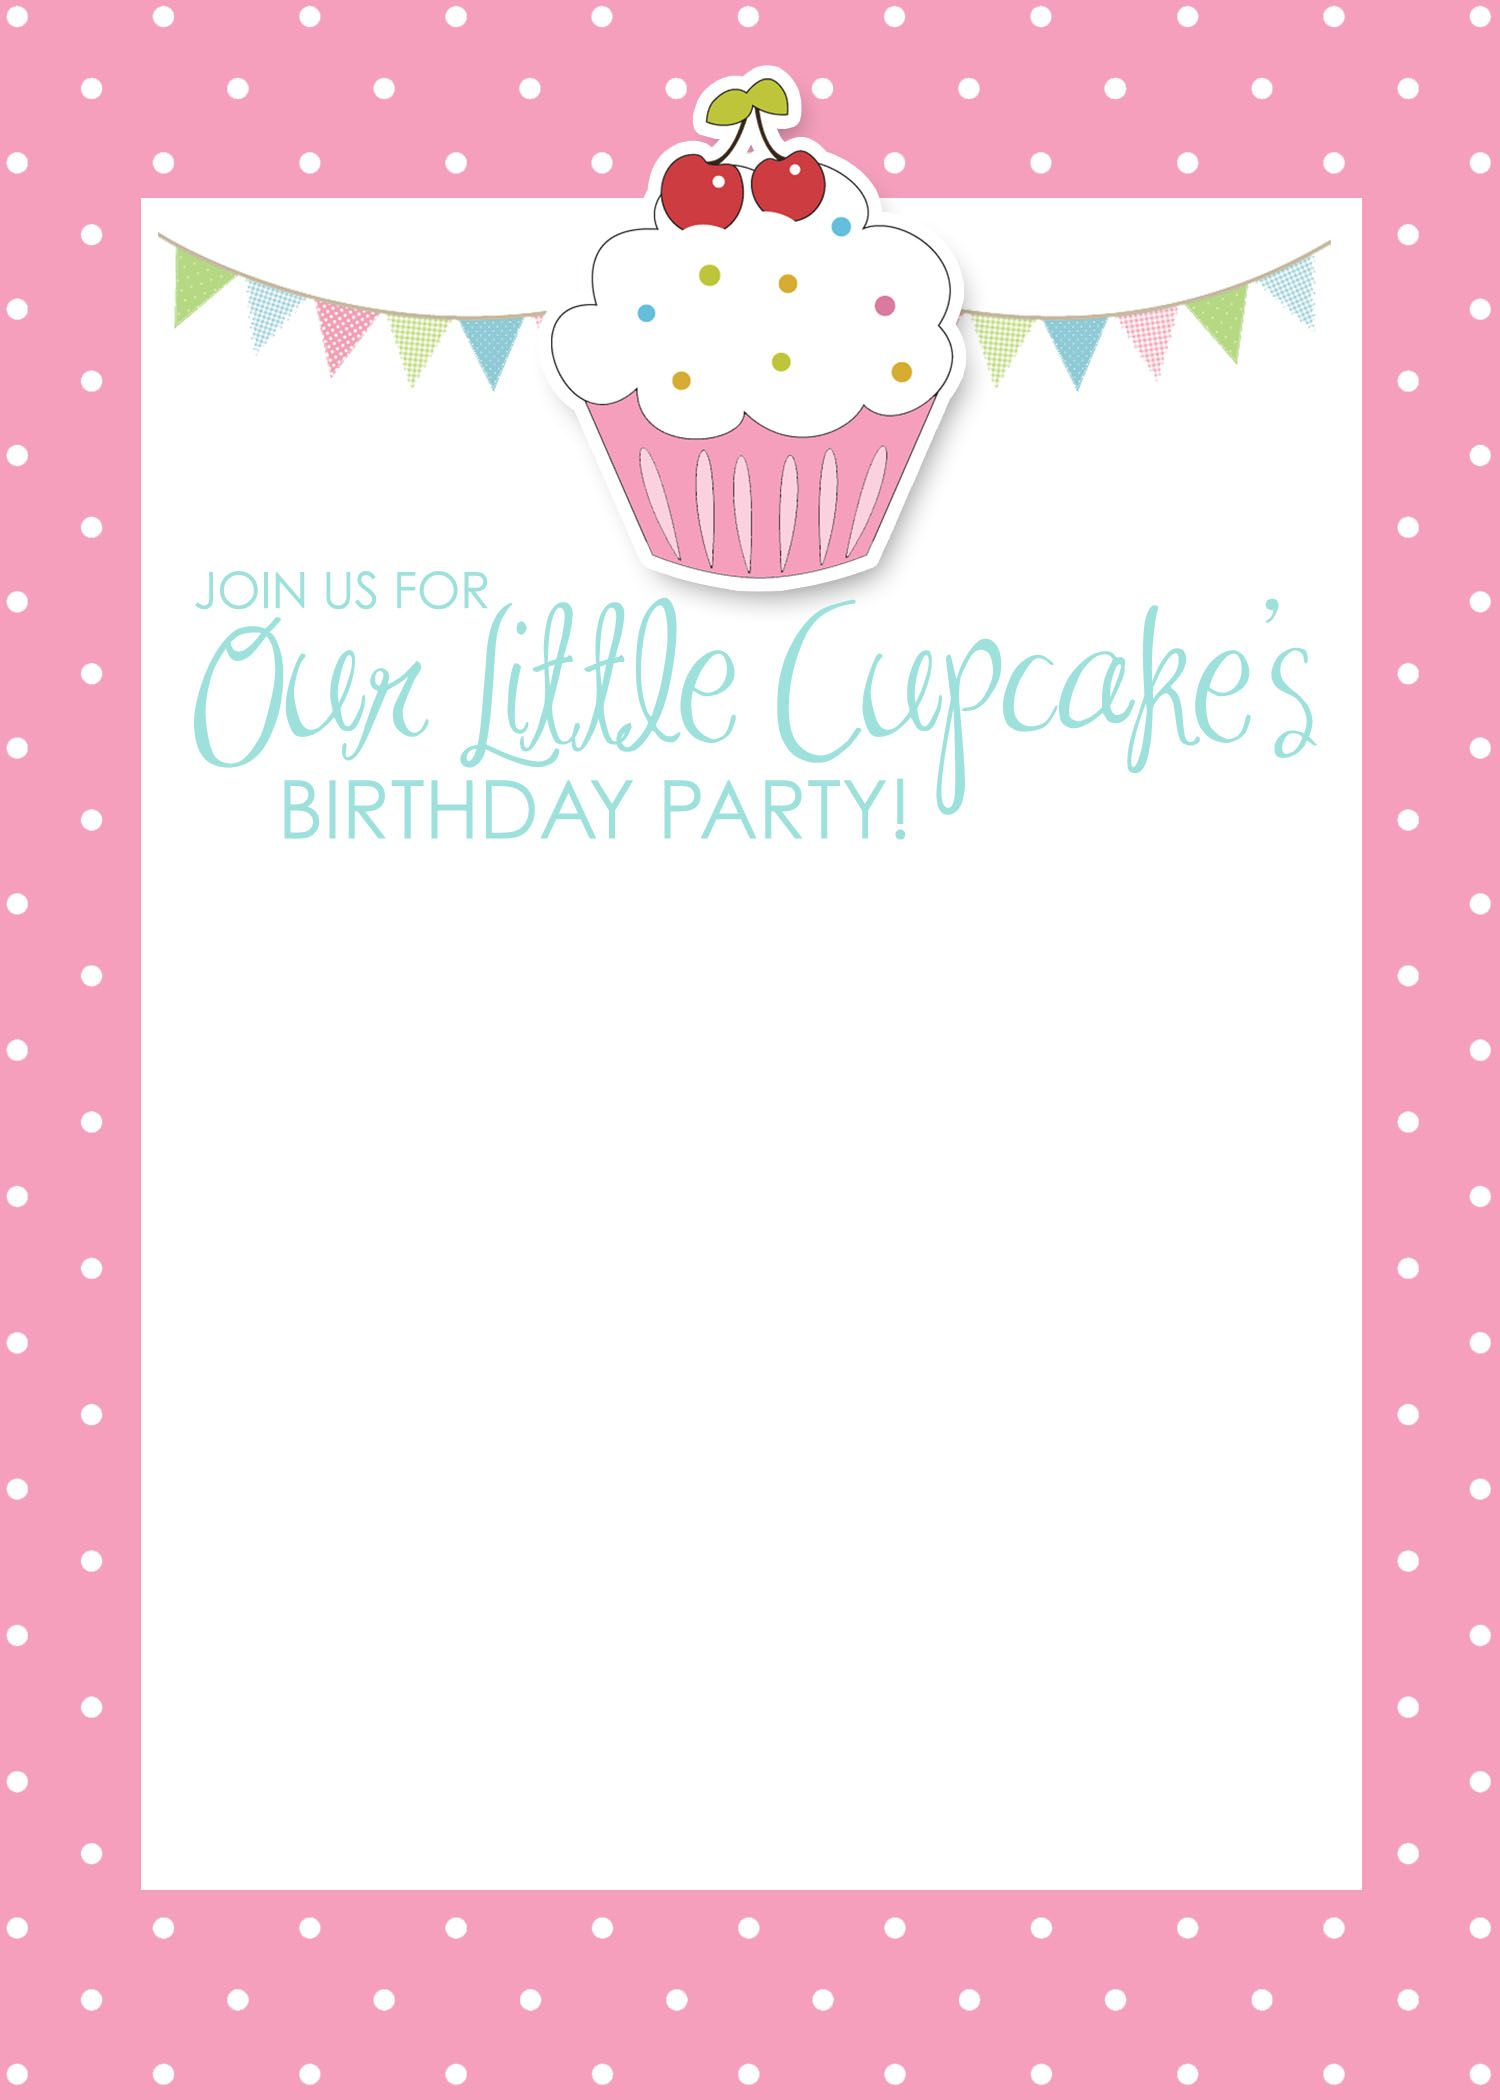 Cupcake Themed Birthday Party with FREE Printables – Free Printable Party Invitations for Kids Birthday Parties